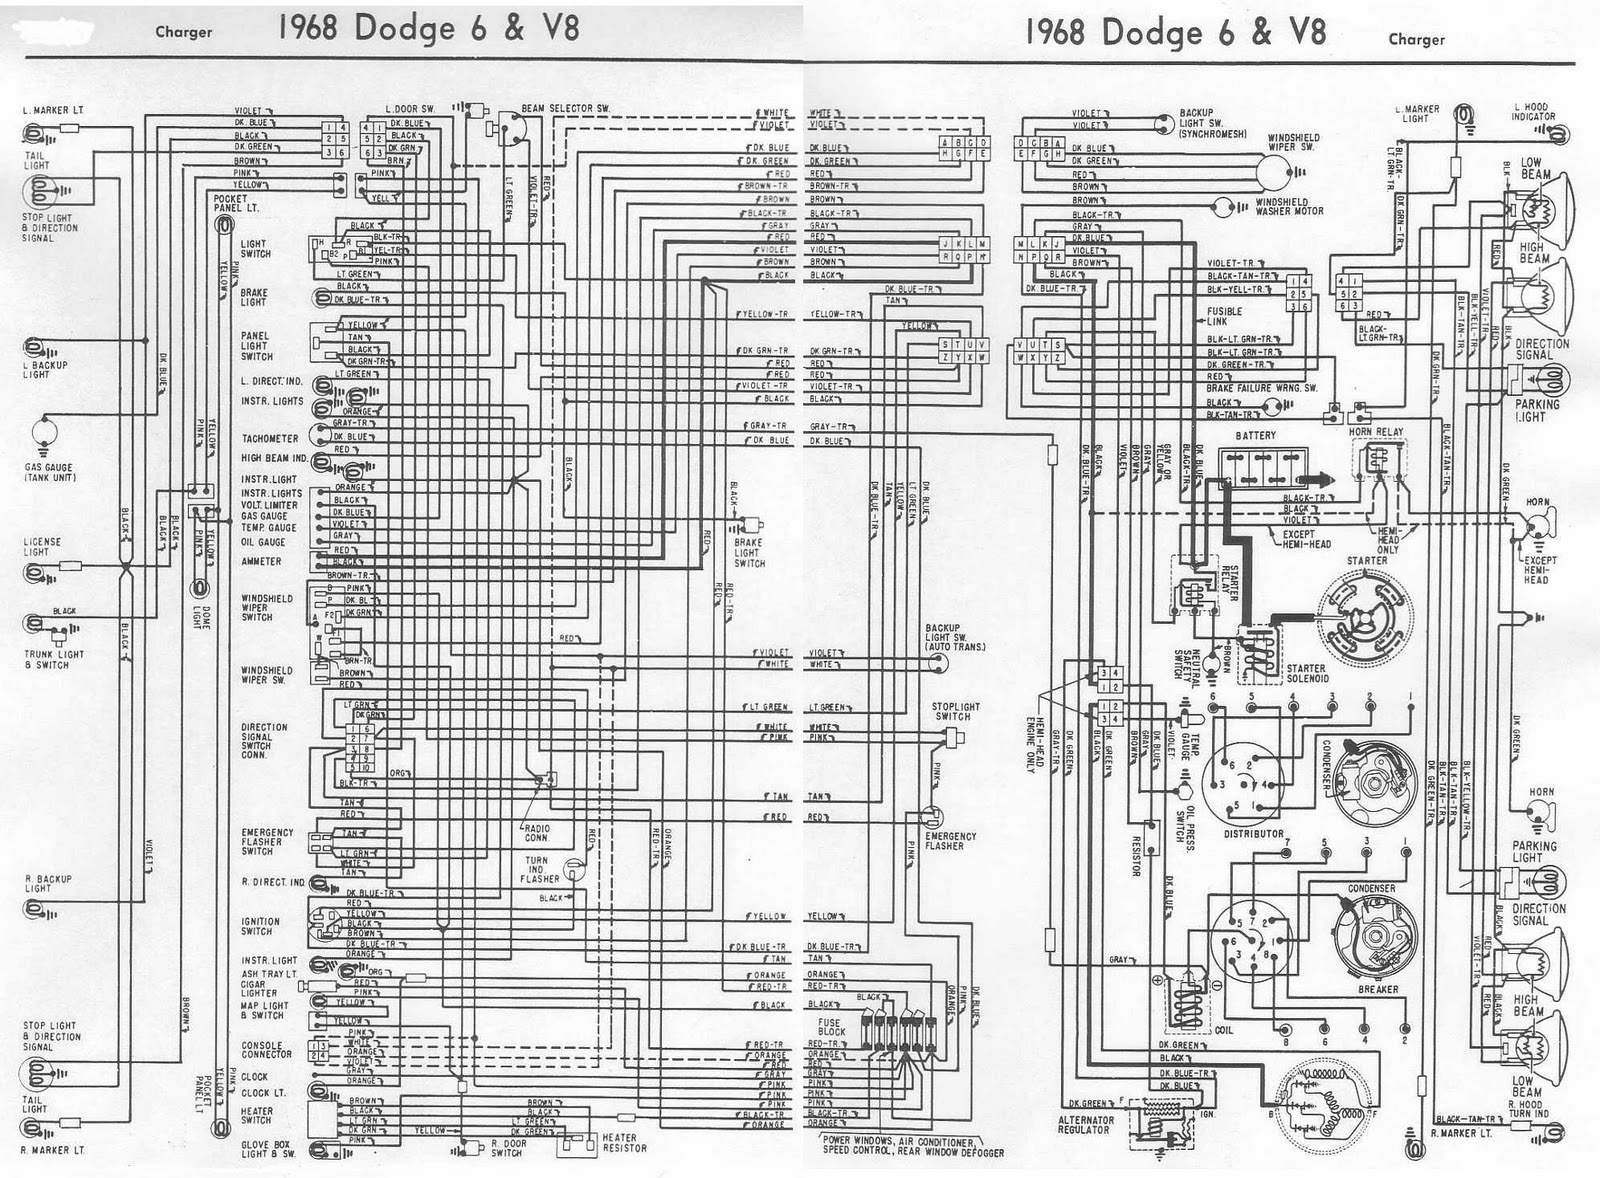 Dodge+Charger+1968+6+and+V8+Complete+Electrical+Wiring+Diagram dodge wiring diagrams 1970 dodge challenger wiring diagram \u2022 free 1970 Dodge Challenger Wiring-Diagram at edmiracle.co